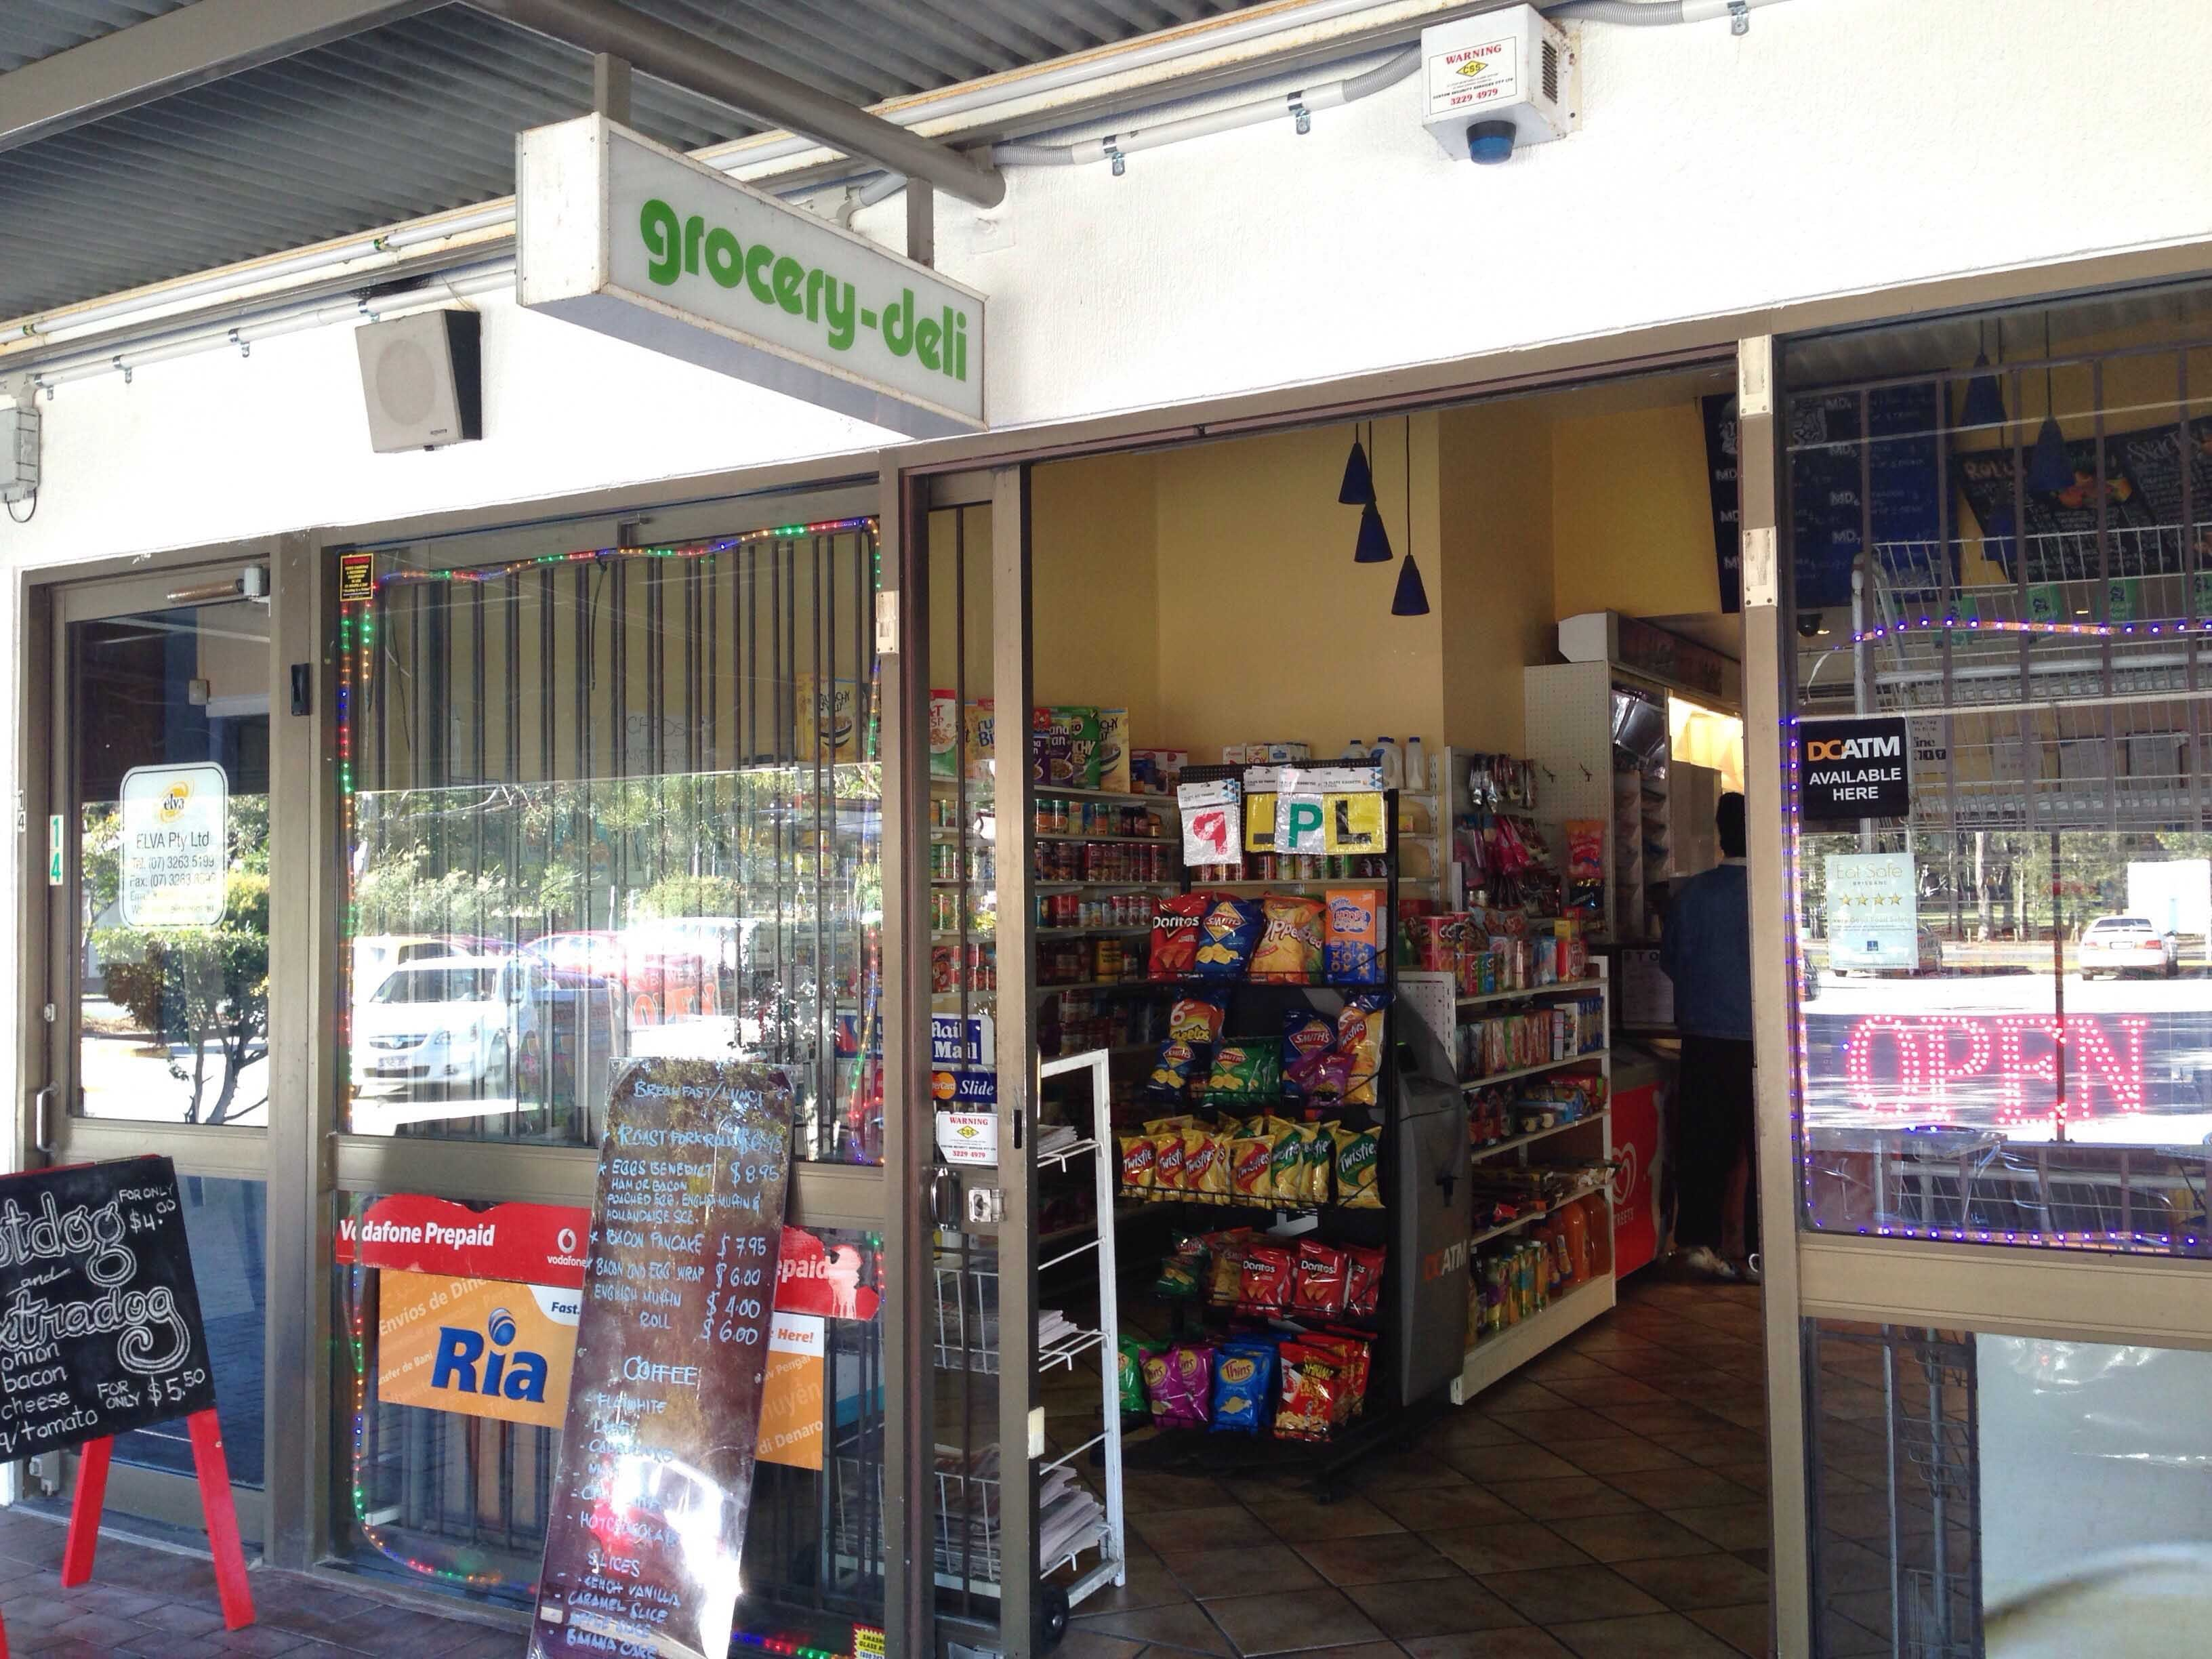 Grocery Deli - Broome Tourism